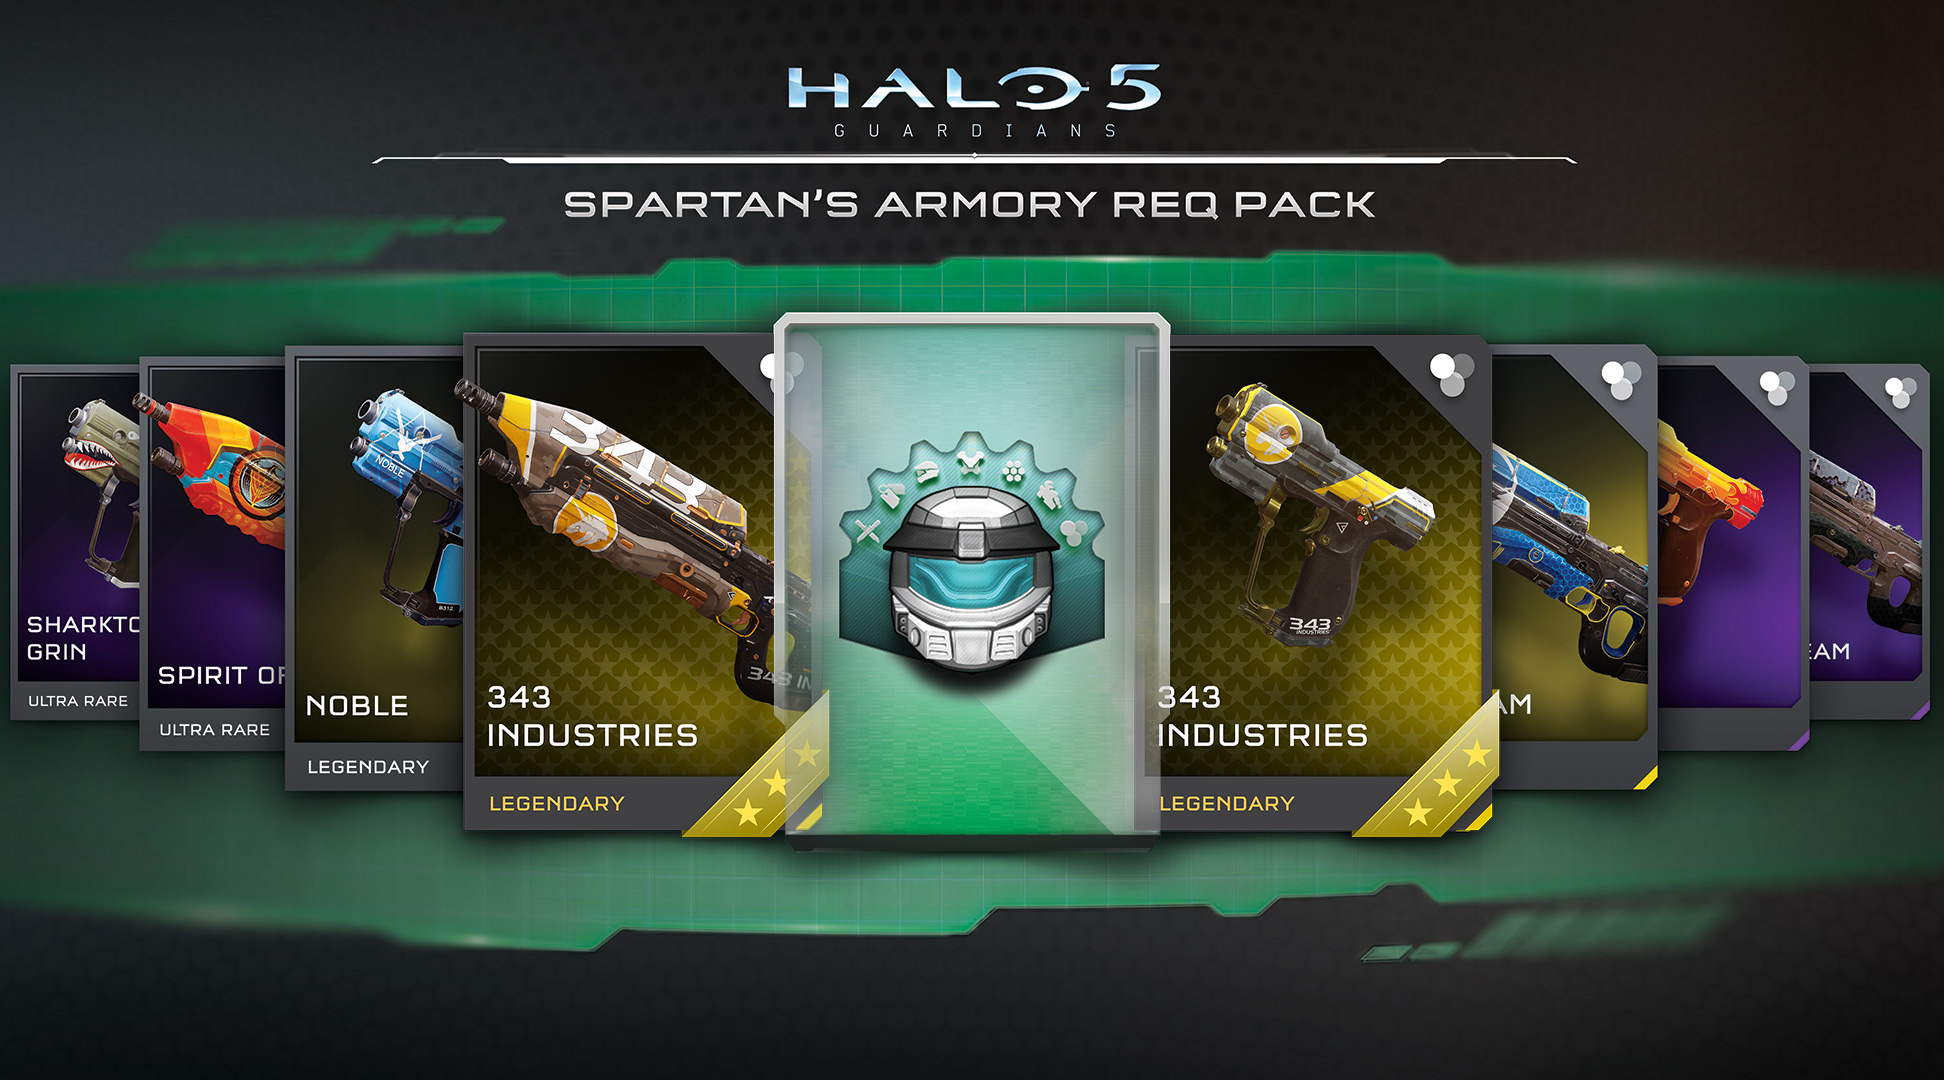 Halo 5 Guardians Spartan's Armory REQ Pack